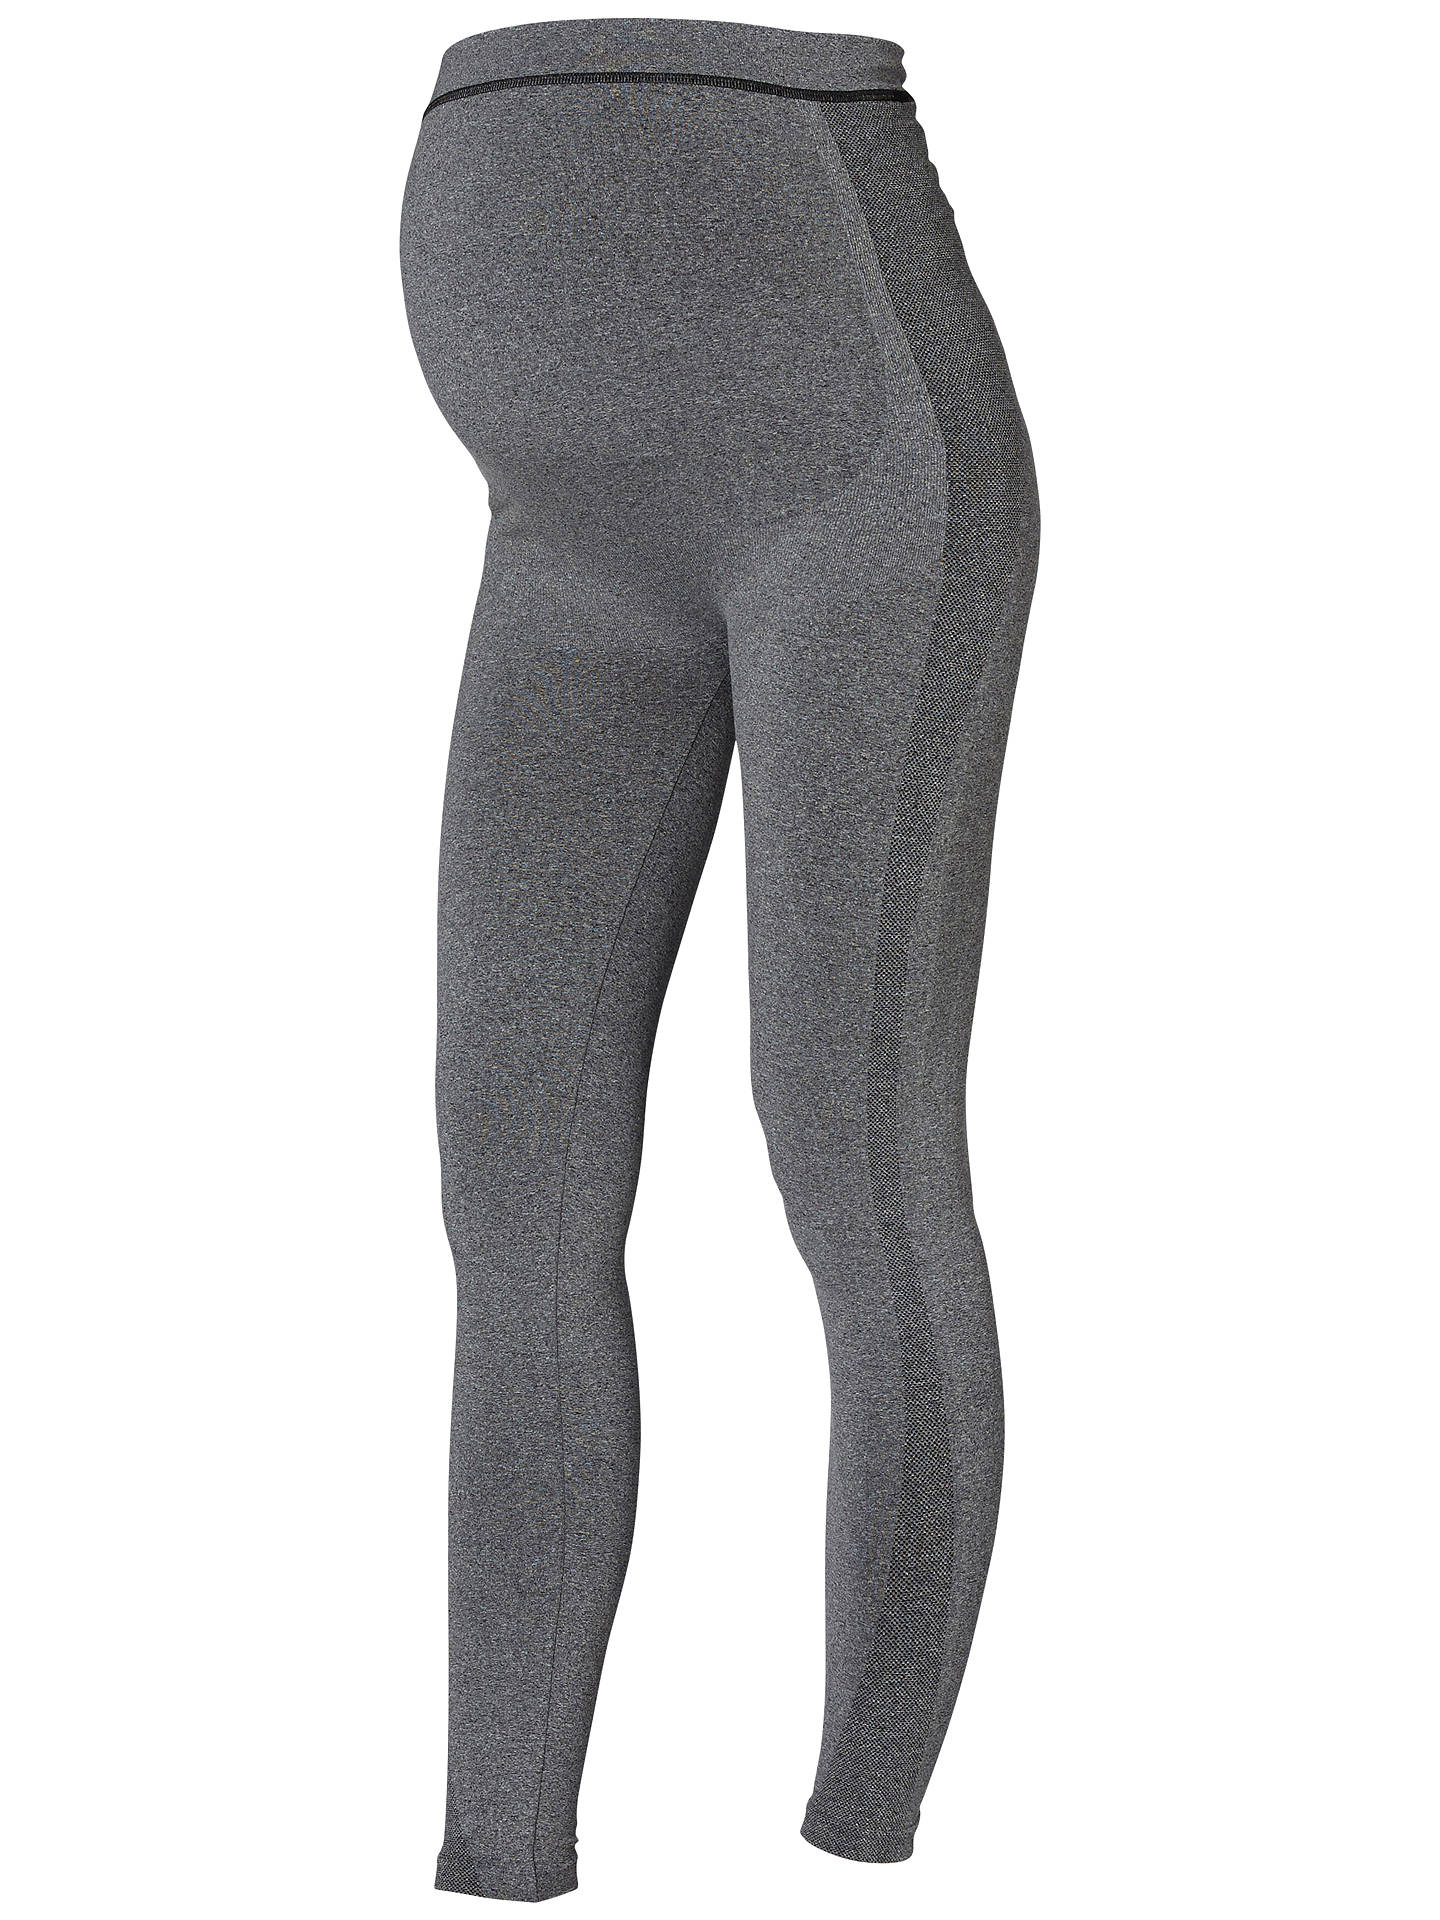 72bec8b9e05eb Buy Mamalicious Maternity Sports Leggings, Grey, S/M Online at  johnlewis.com ...